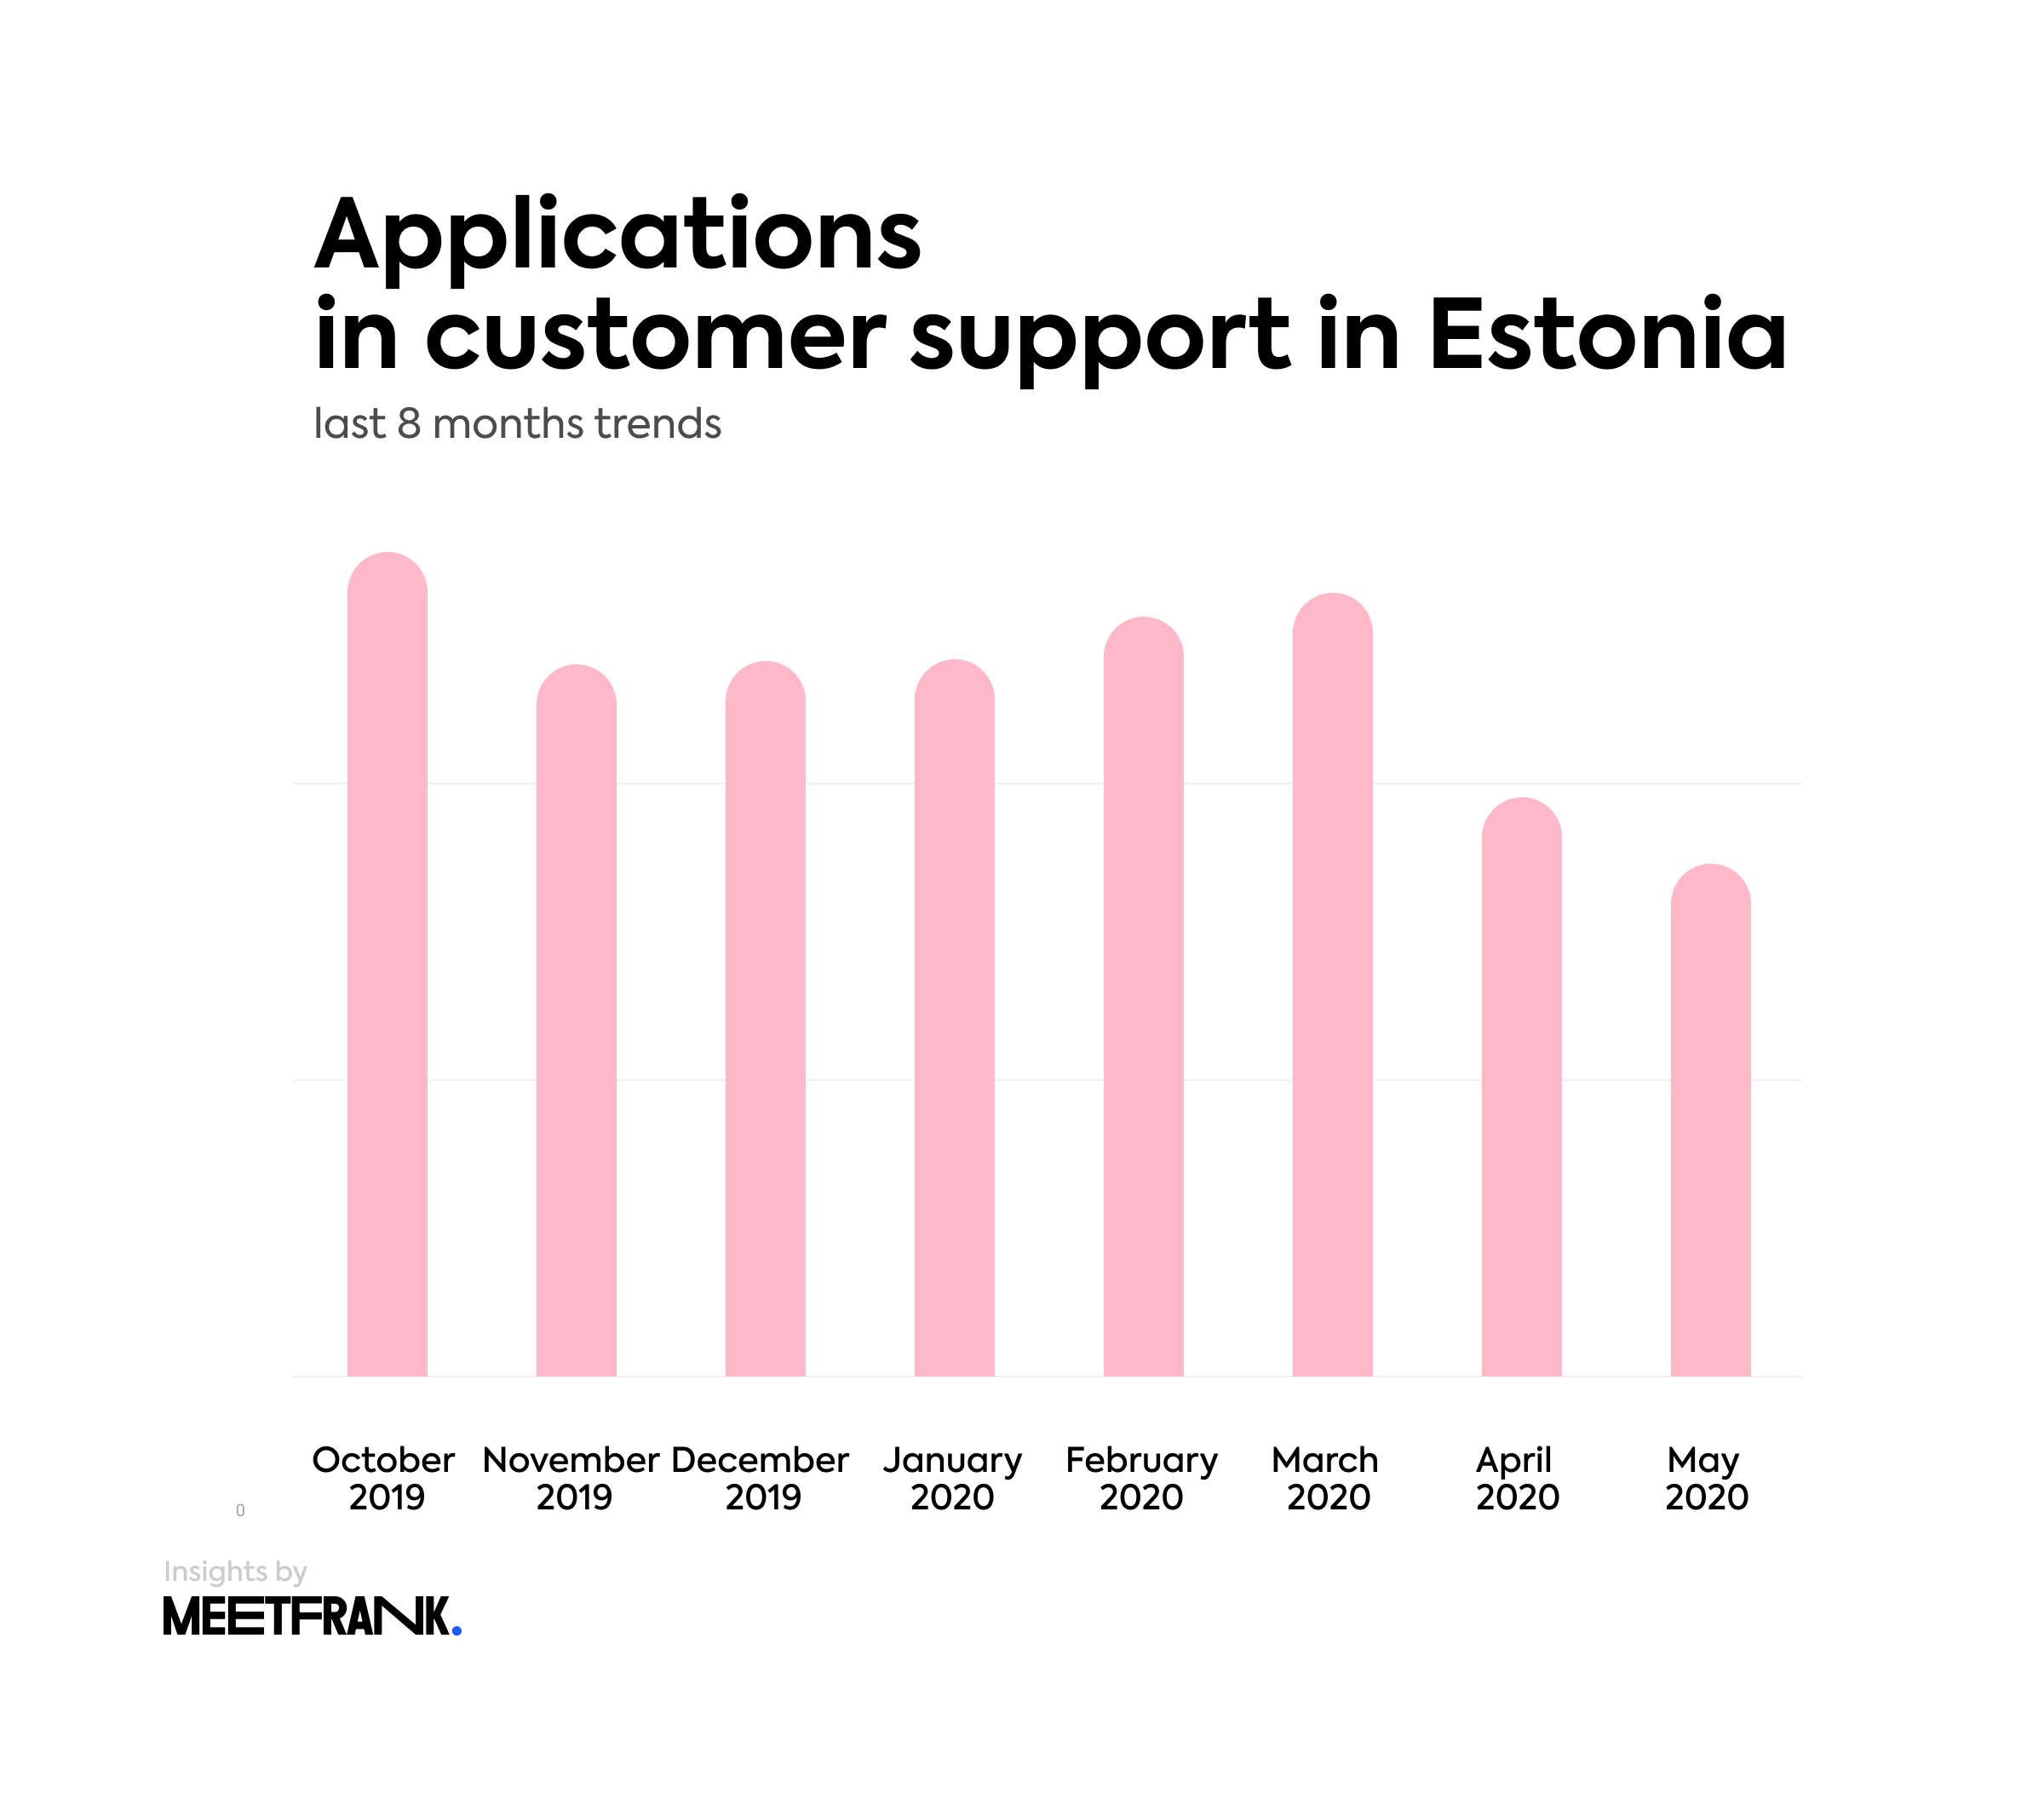 applications in CS in Estonia